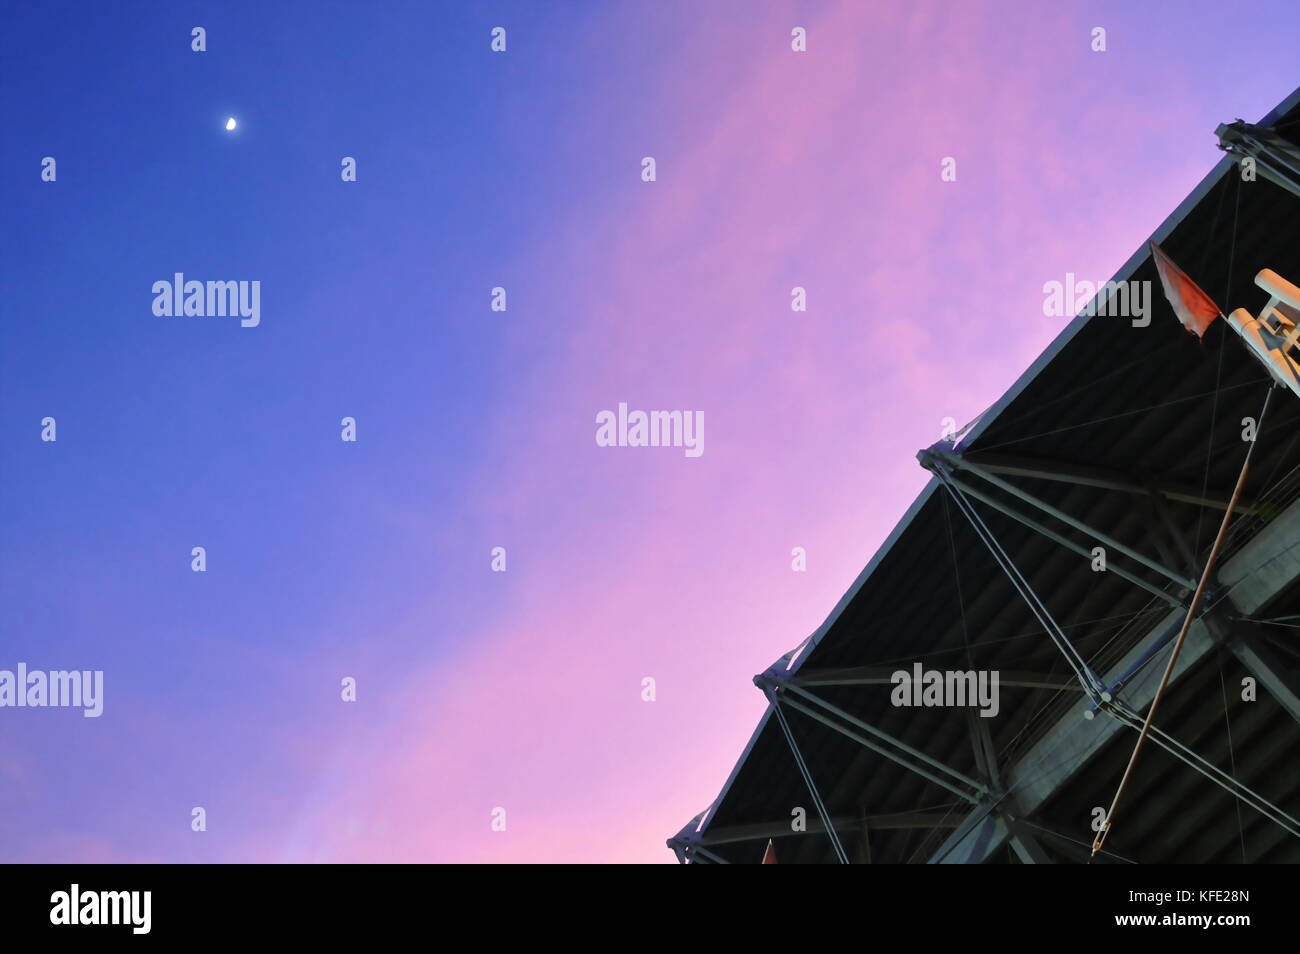 moon on twilight sky over football stadium roof - Stock Image